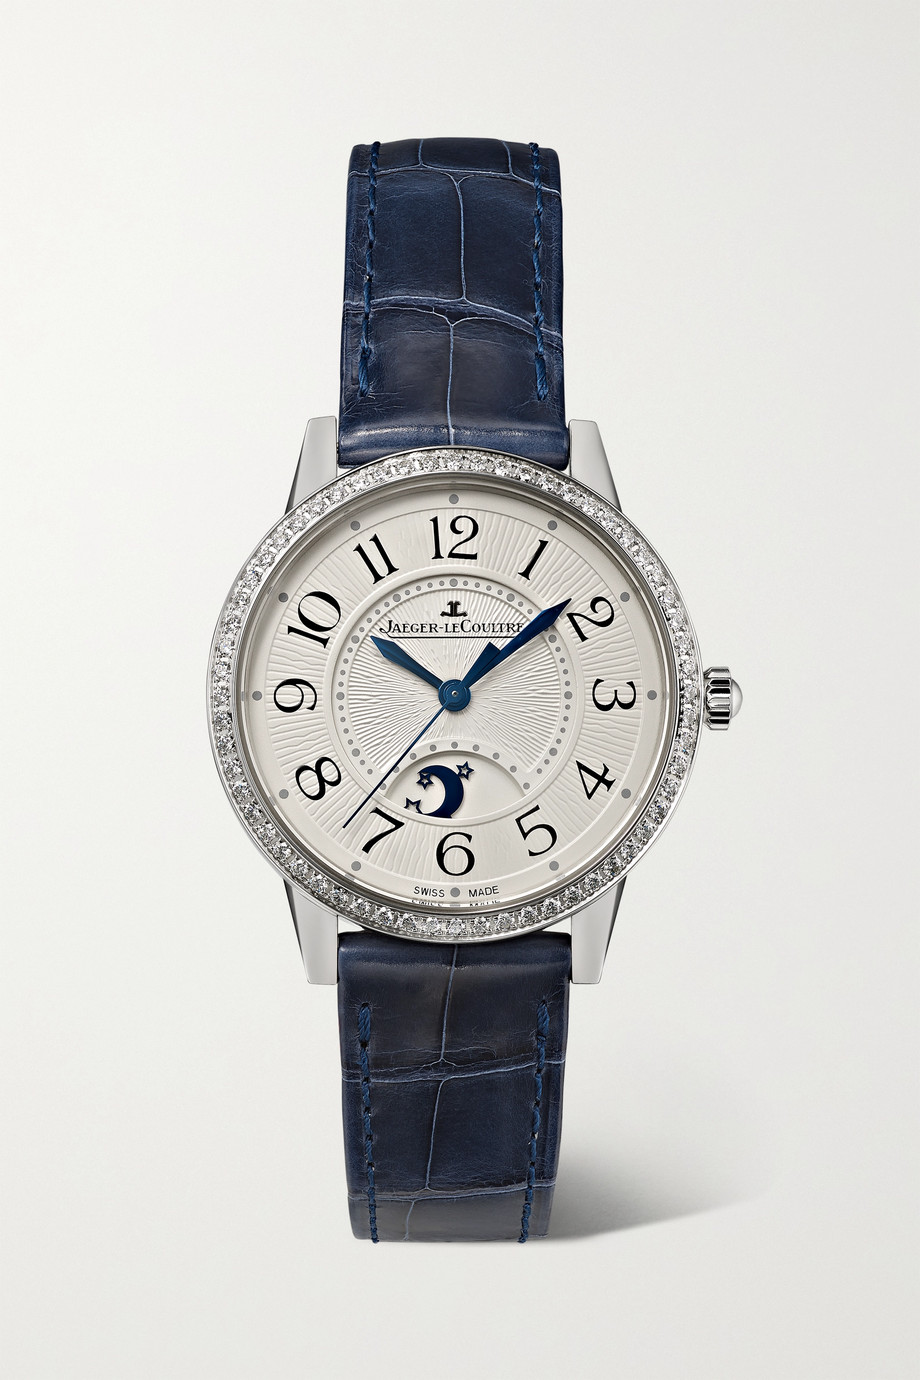 Jaeger-LeCoultre Rendez-Vous Moon Automatic 29 毫米钻石精钢小号腕表(短吻鳄鱼皮表带)